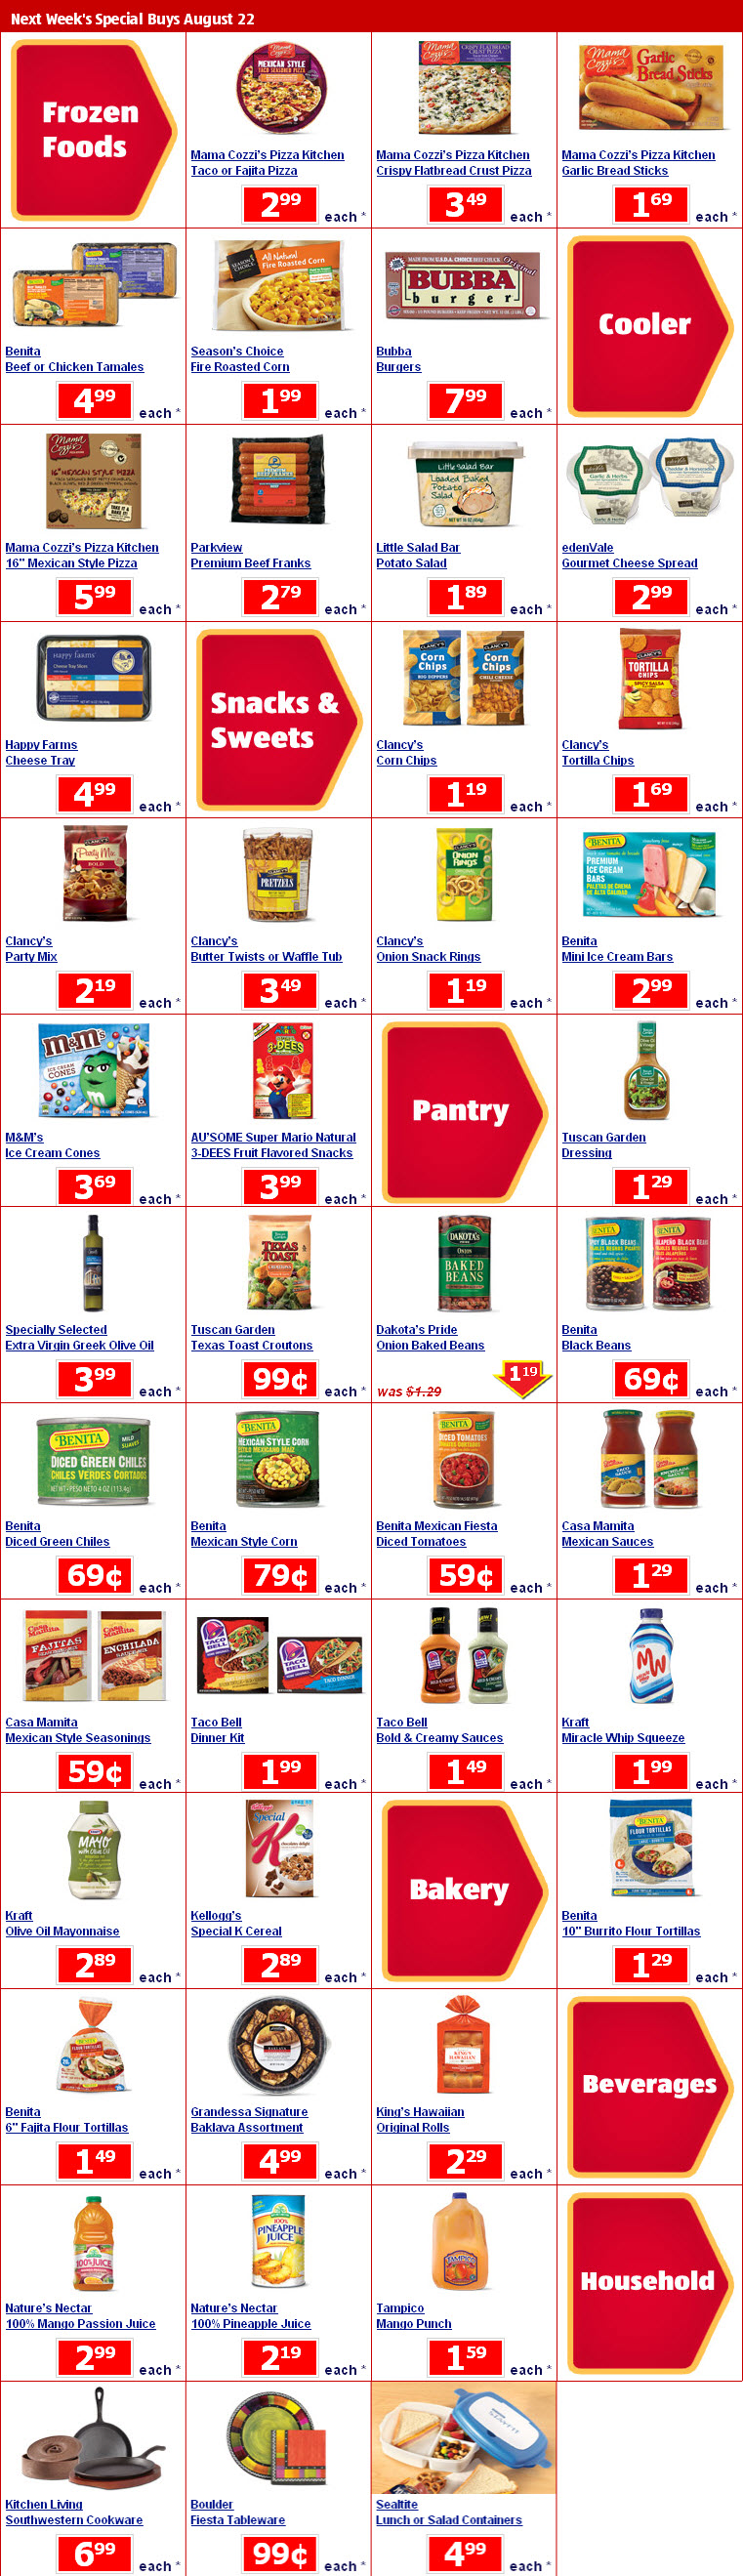 Aldi's Special Buys 8/15: Bubba Burgers only $7.99 & more!!